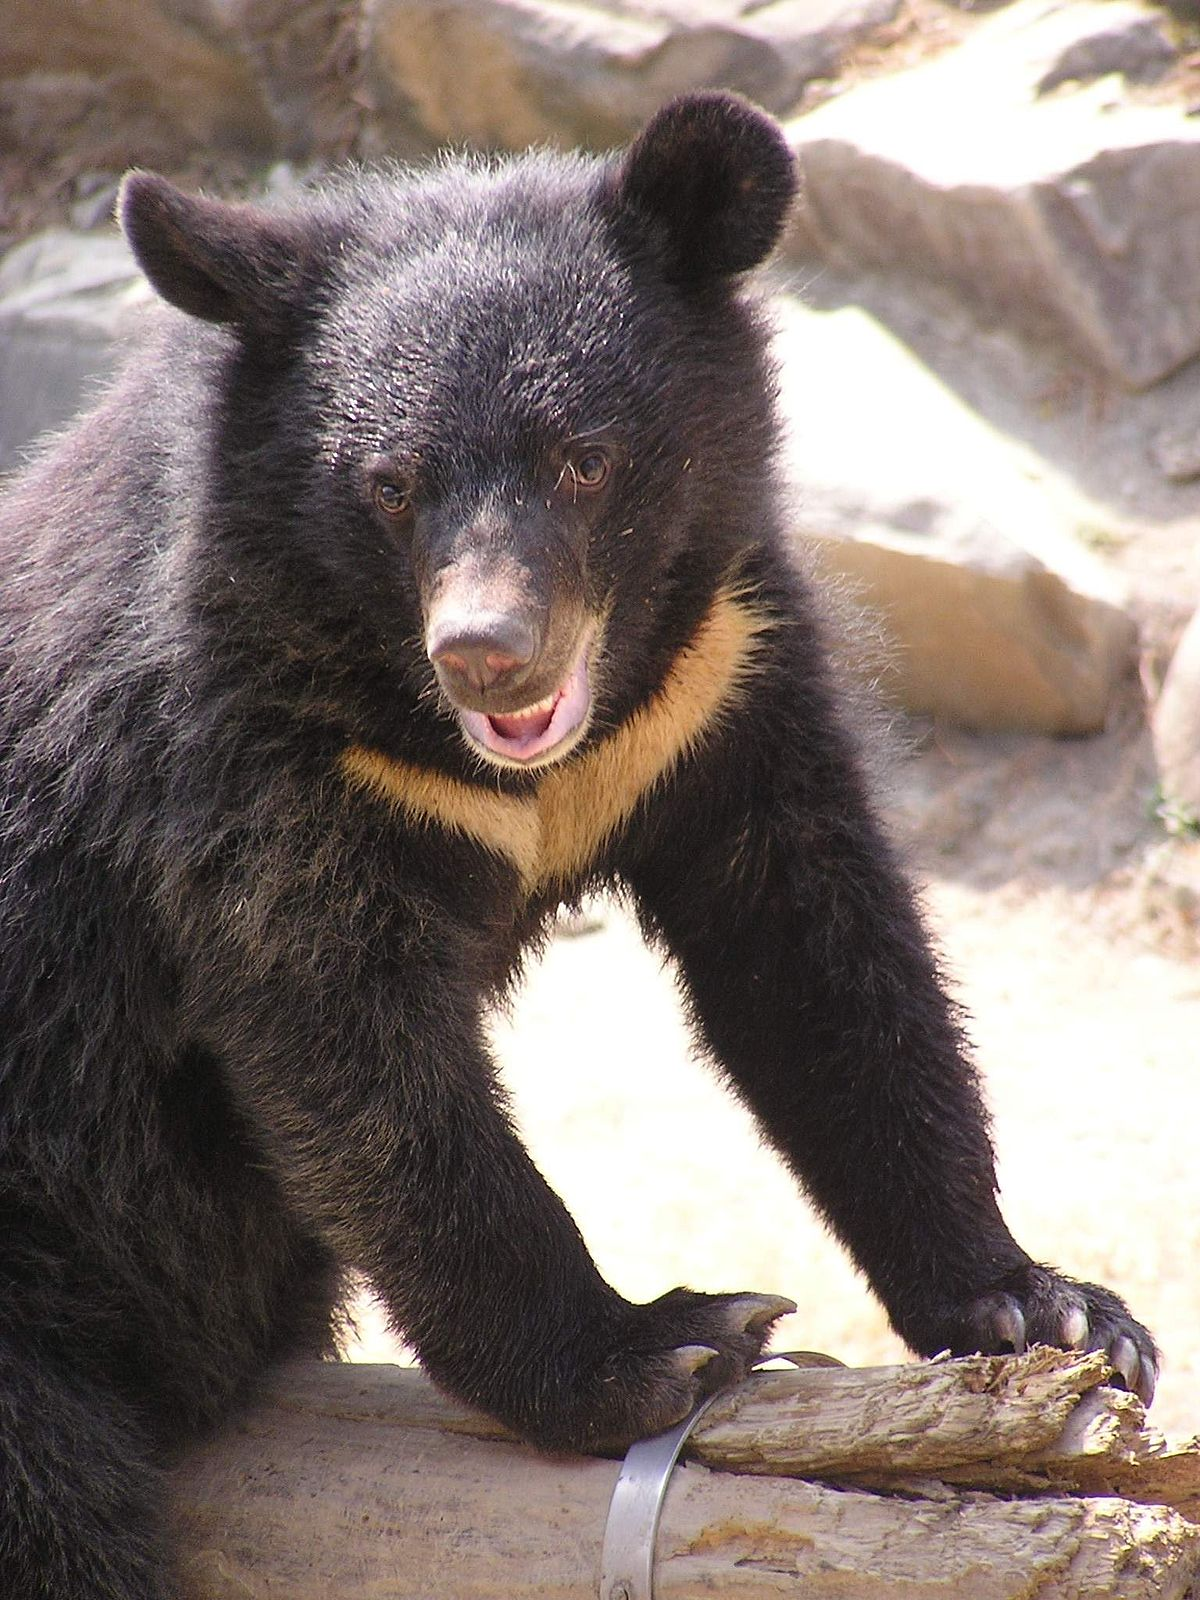 Formosan black bear - Wikipedia - photo#5